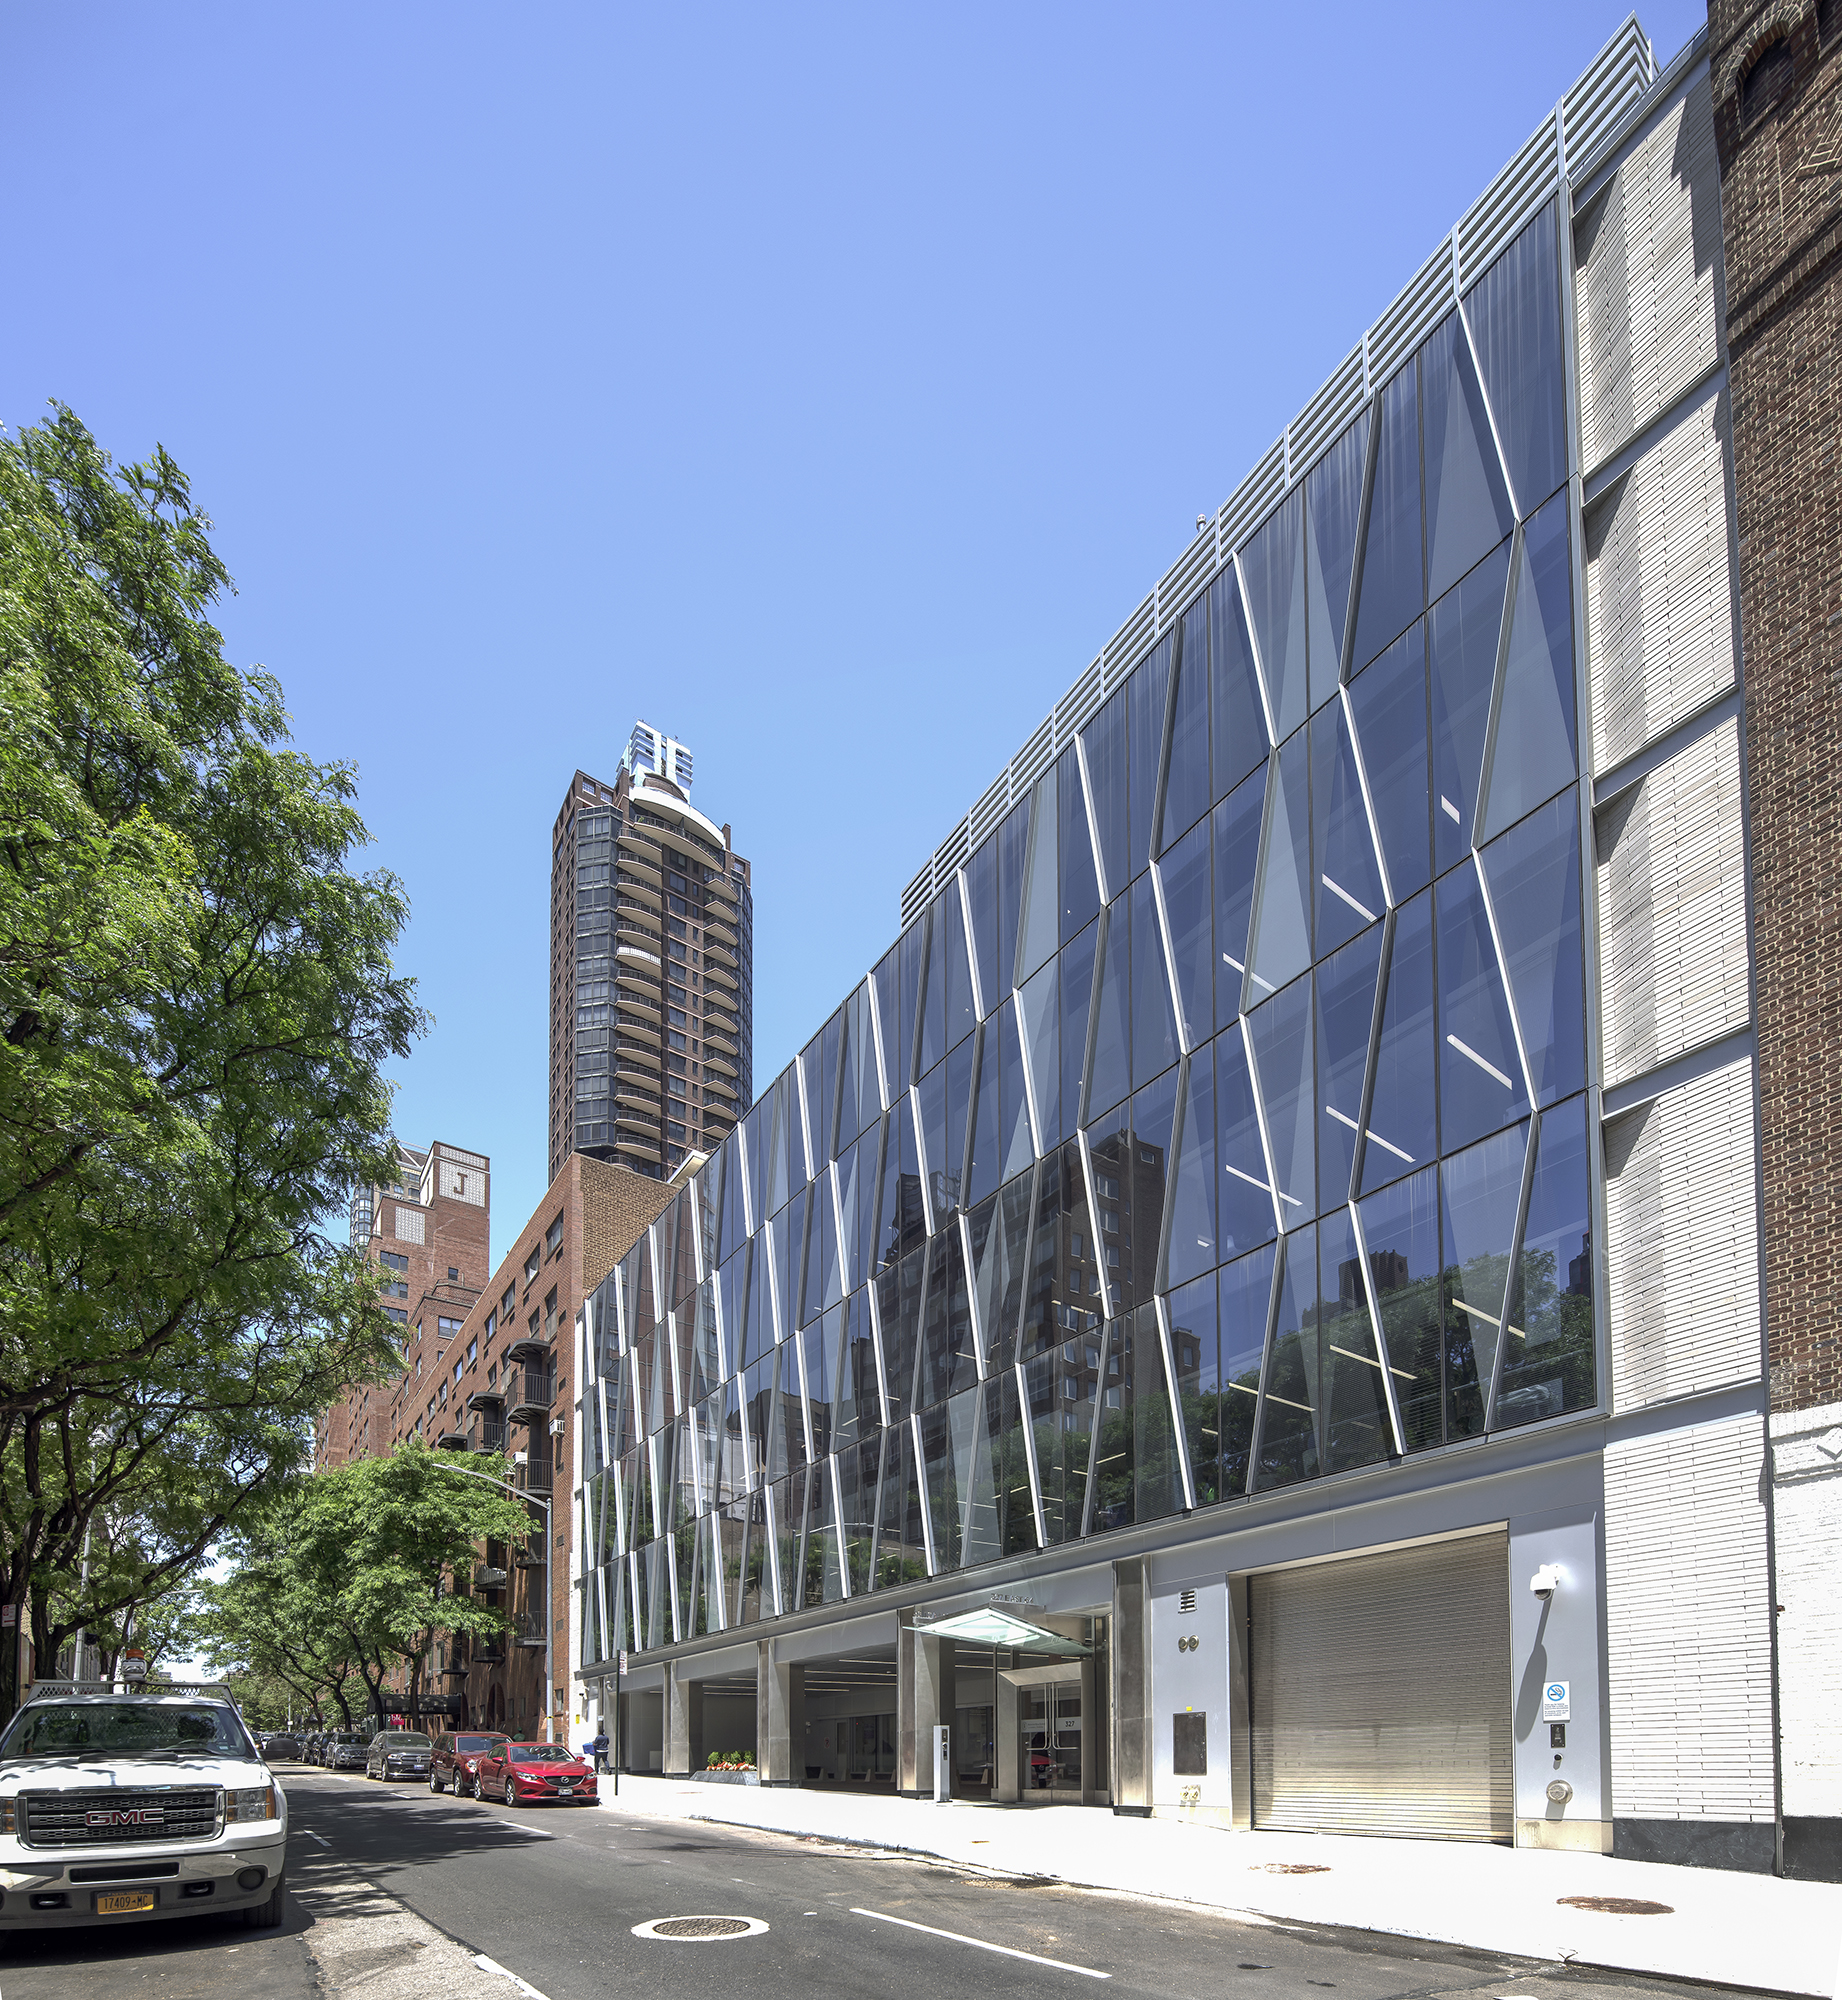 Knowles Cancer Hospital, New York 02.jpg